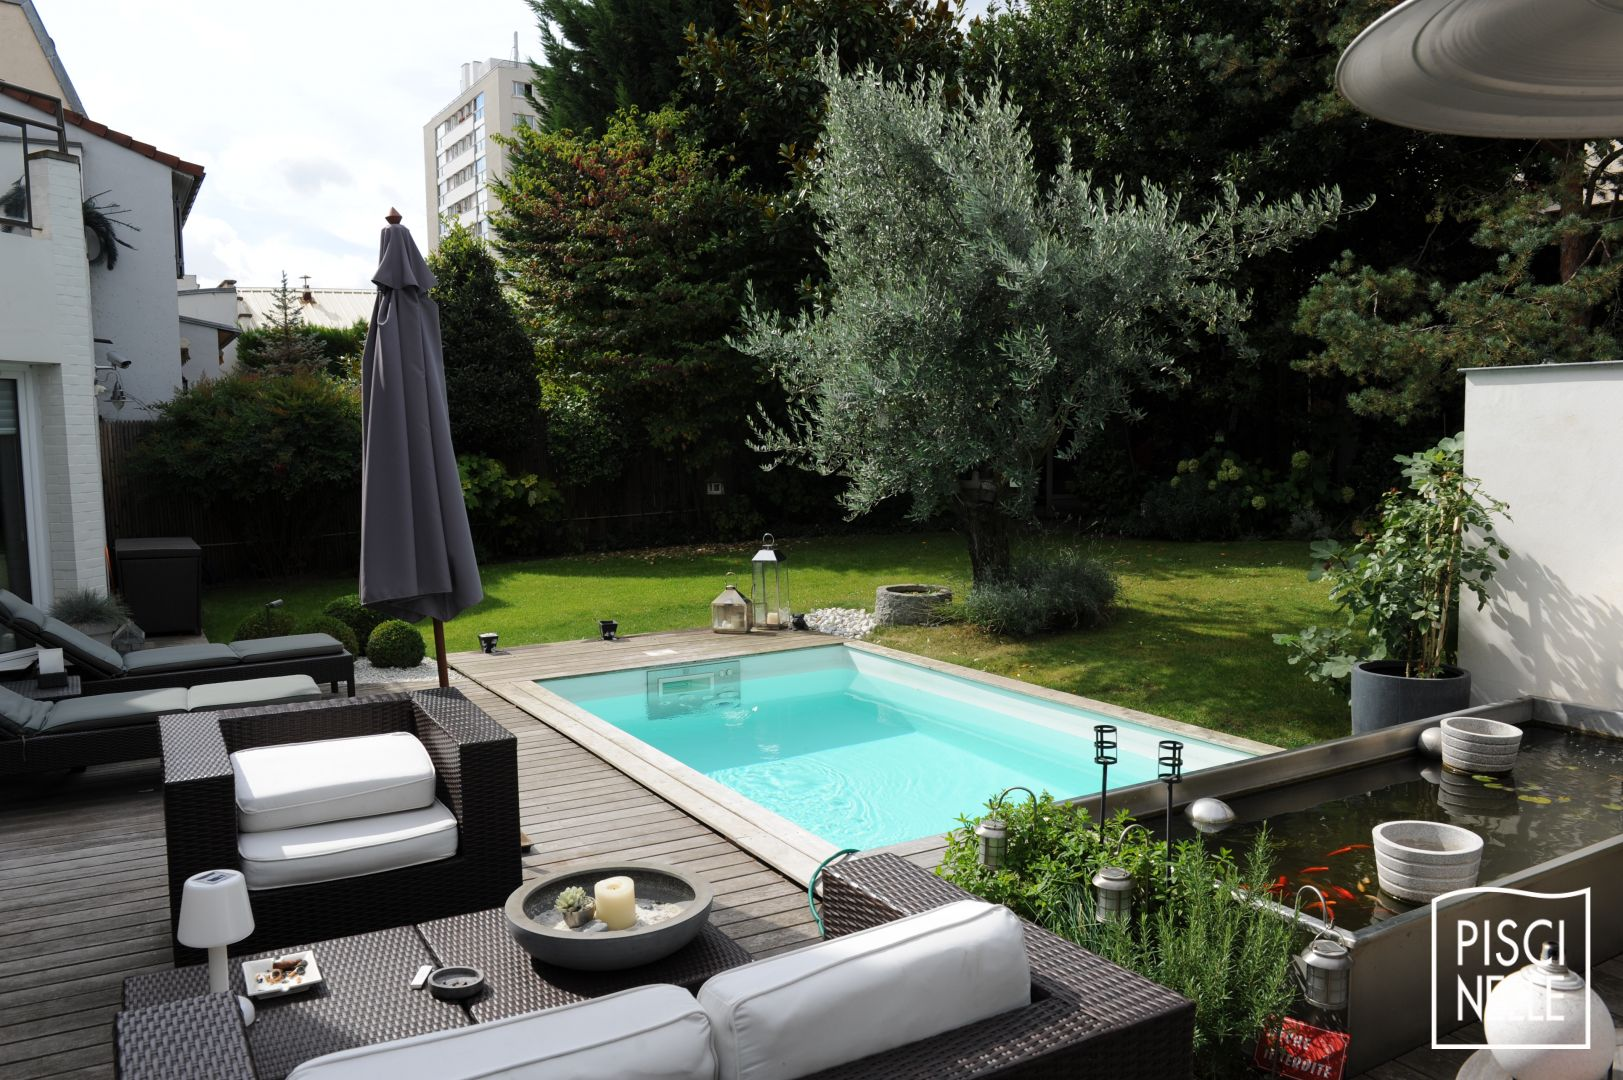 reportage photo petite piscine de centre ville suresnes. Black Bedroom Furniture Sets. Home Design Ideas